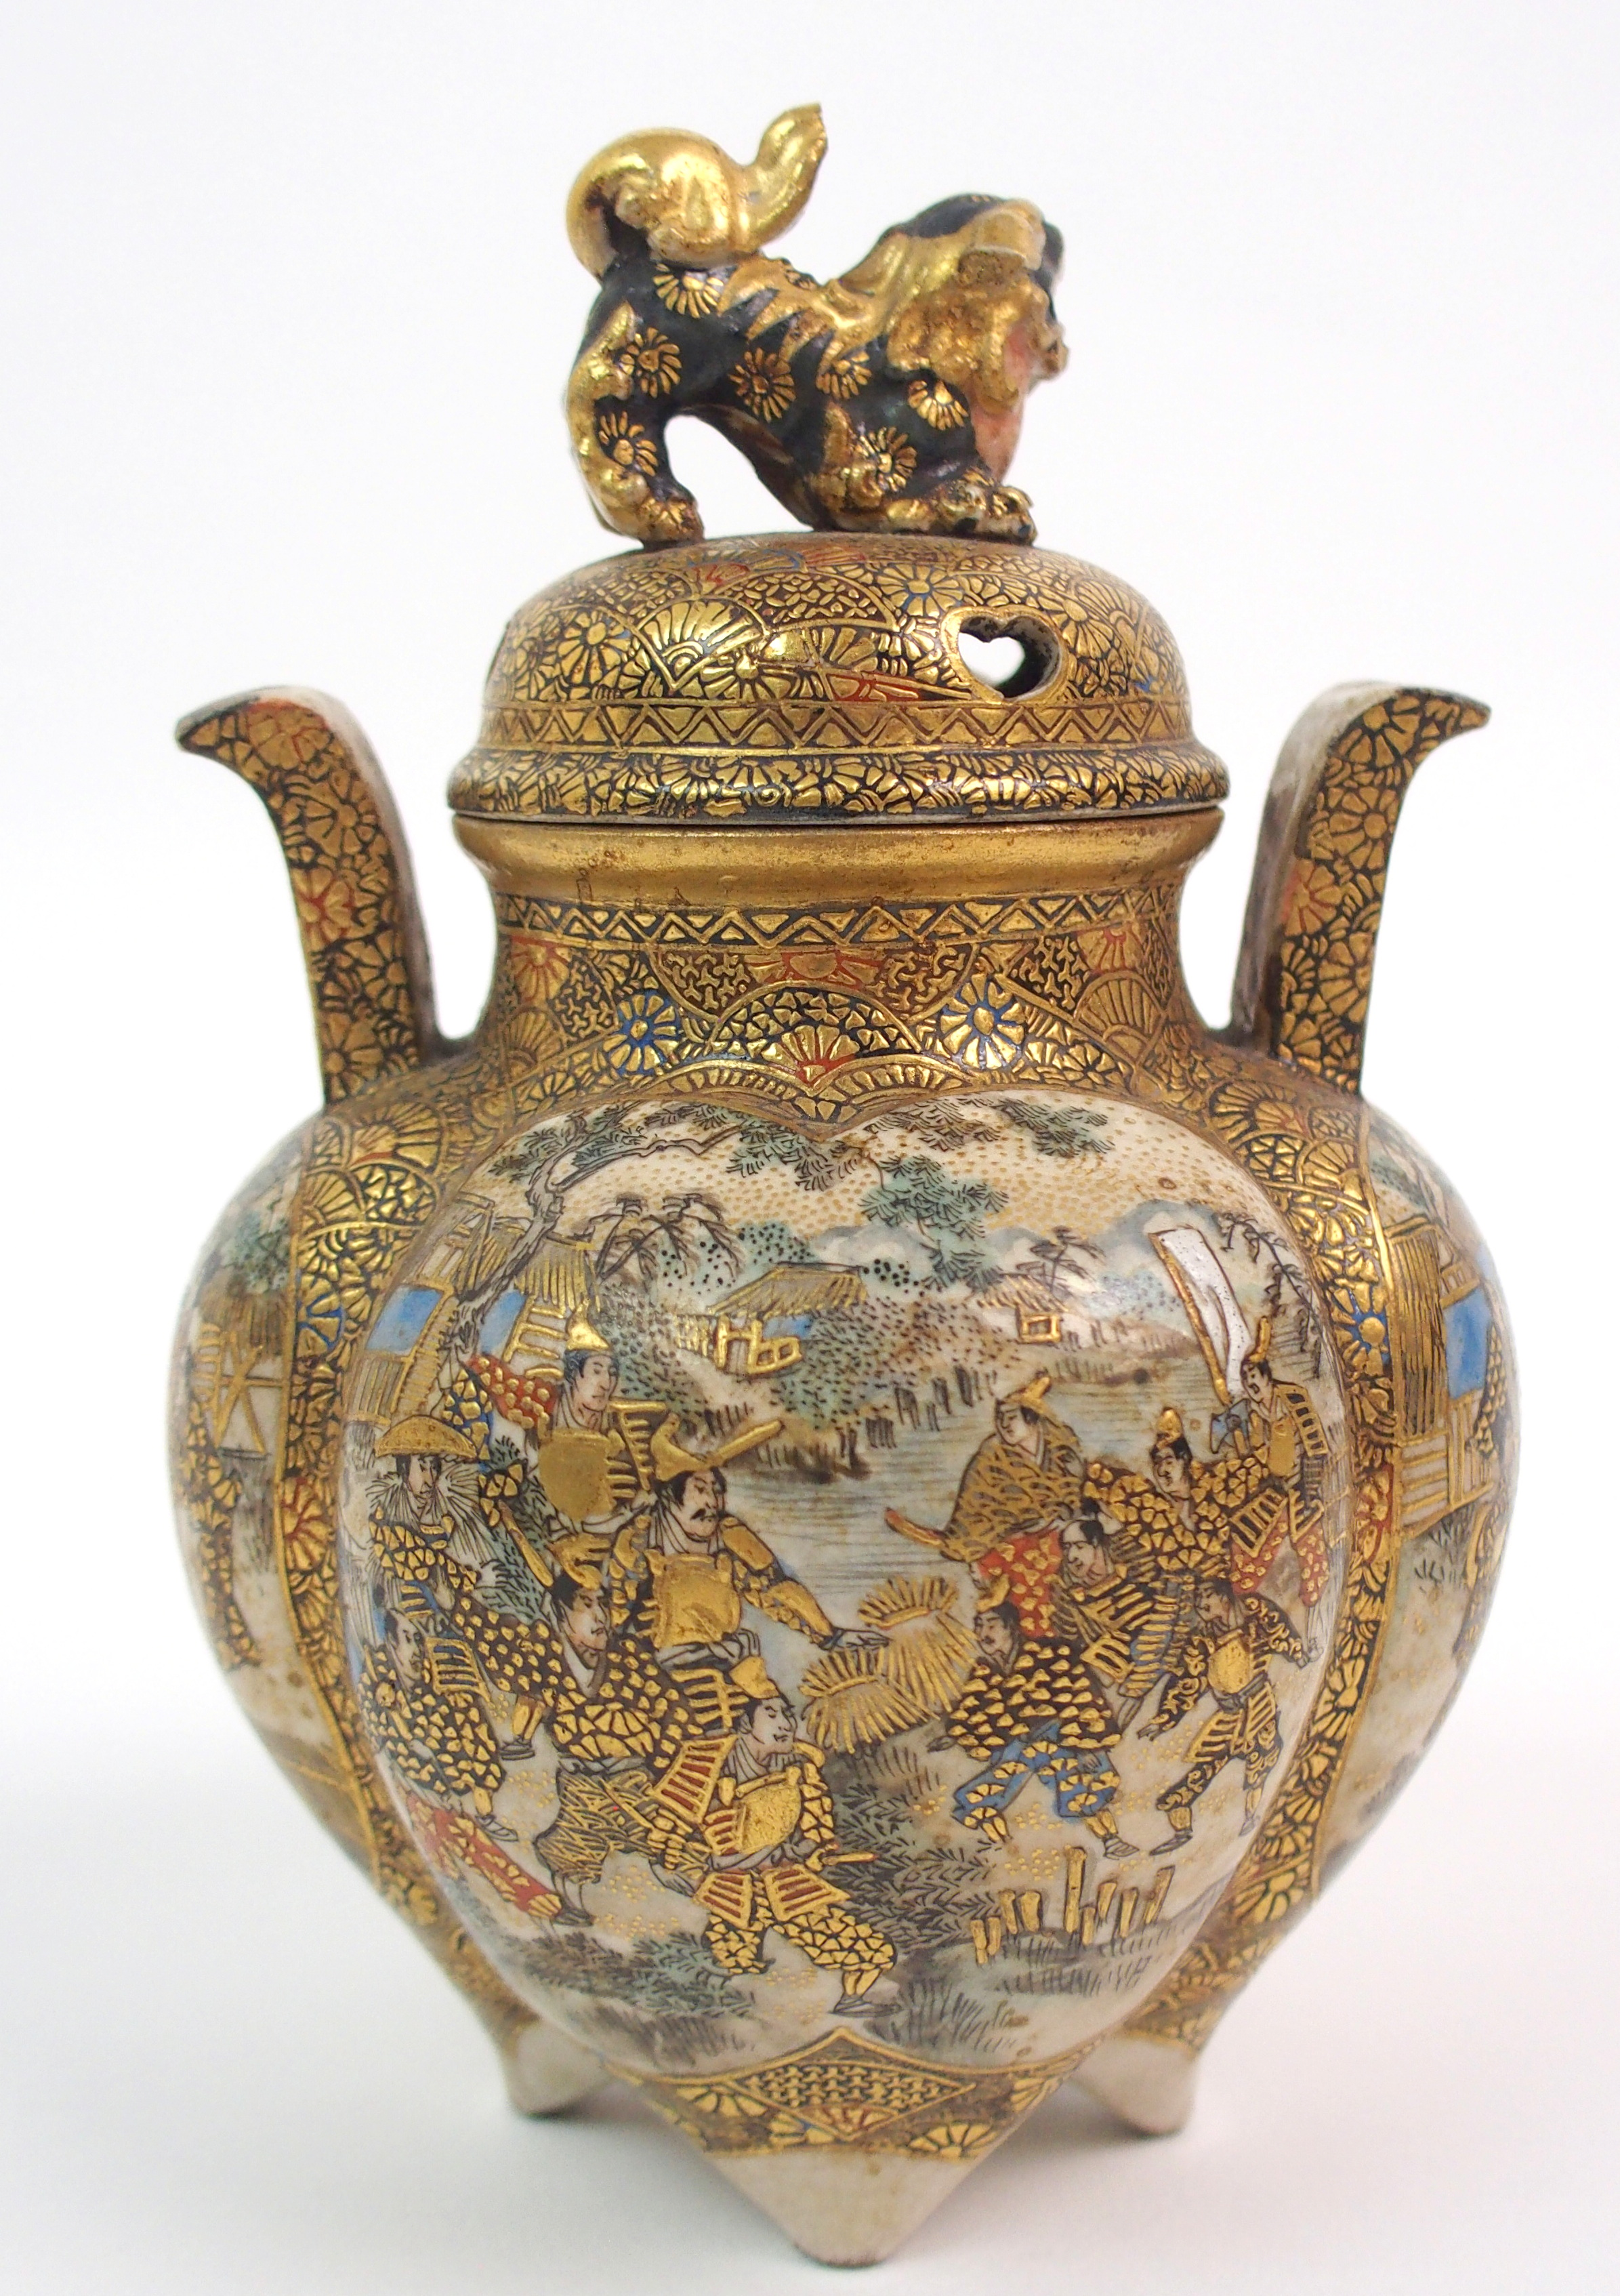 Lot 34 - A SATSUMA KORO the cover with shishi finial above a quatrefoil lobed body painted with numerous